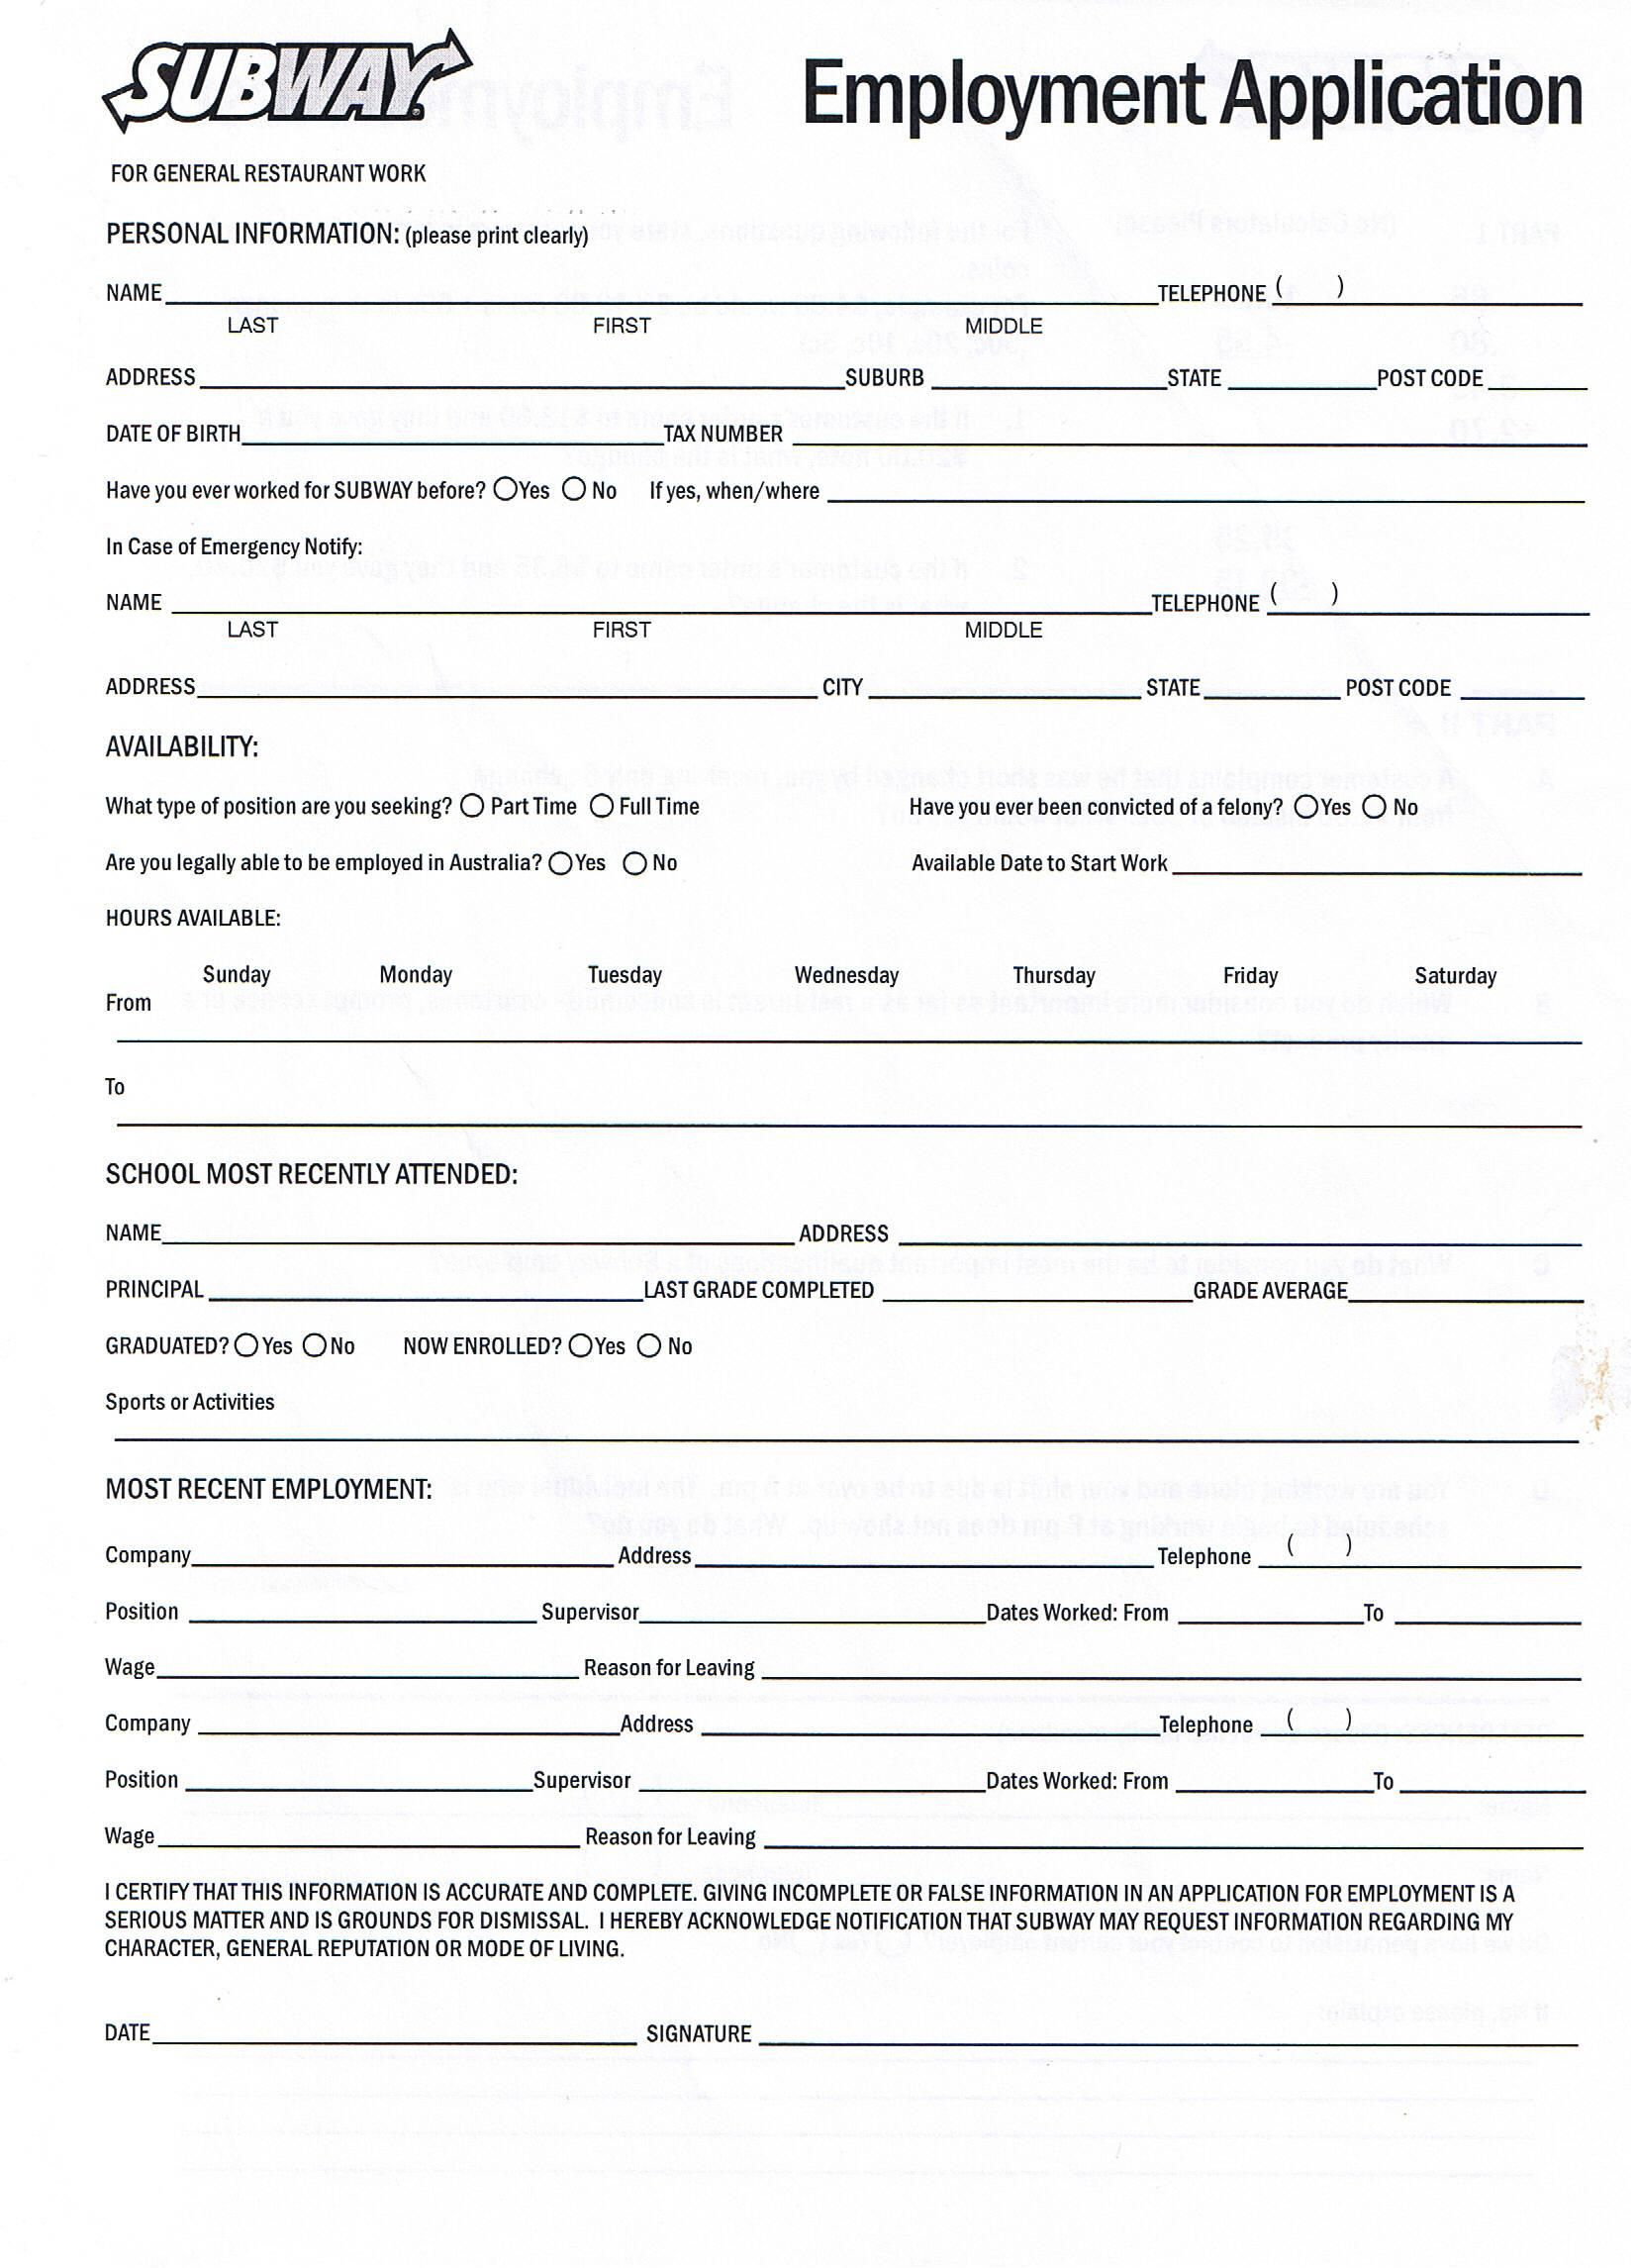 Subway Employment Application Pdf